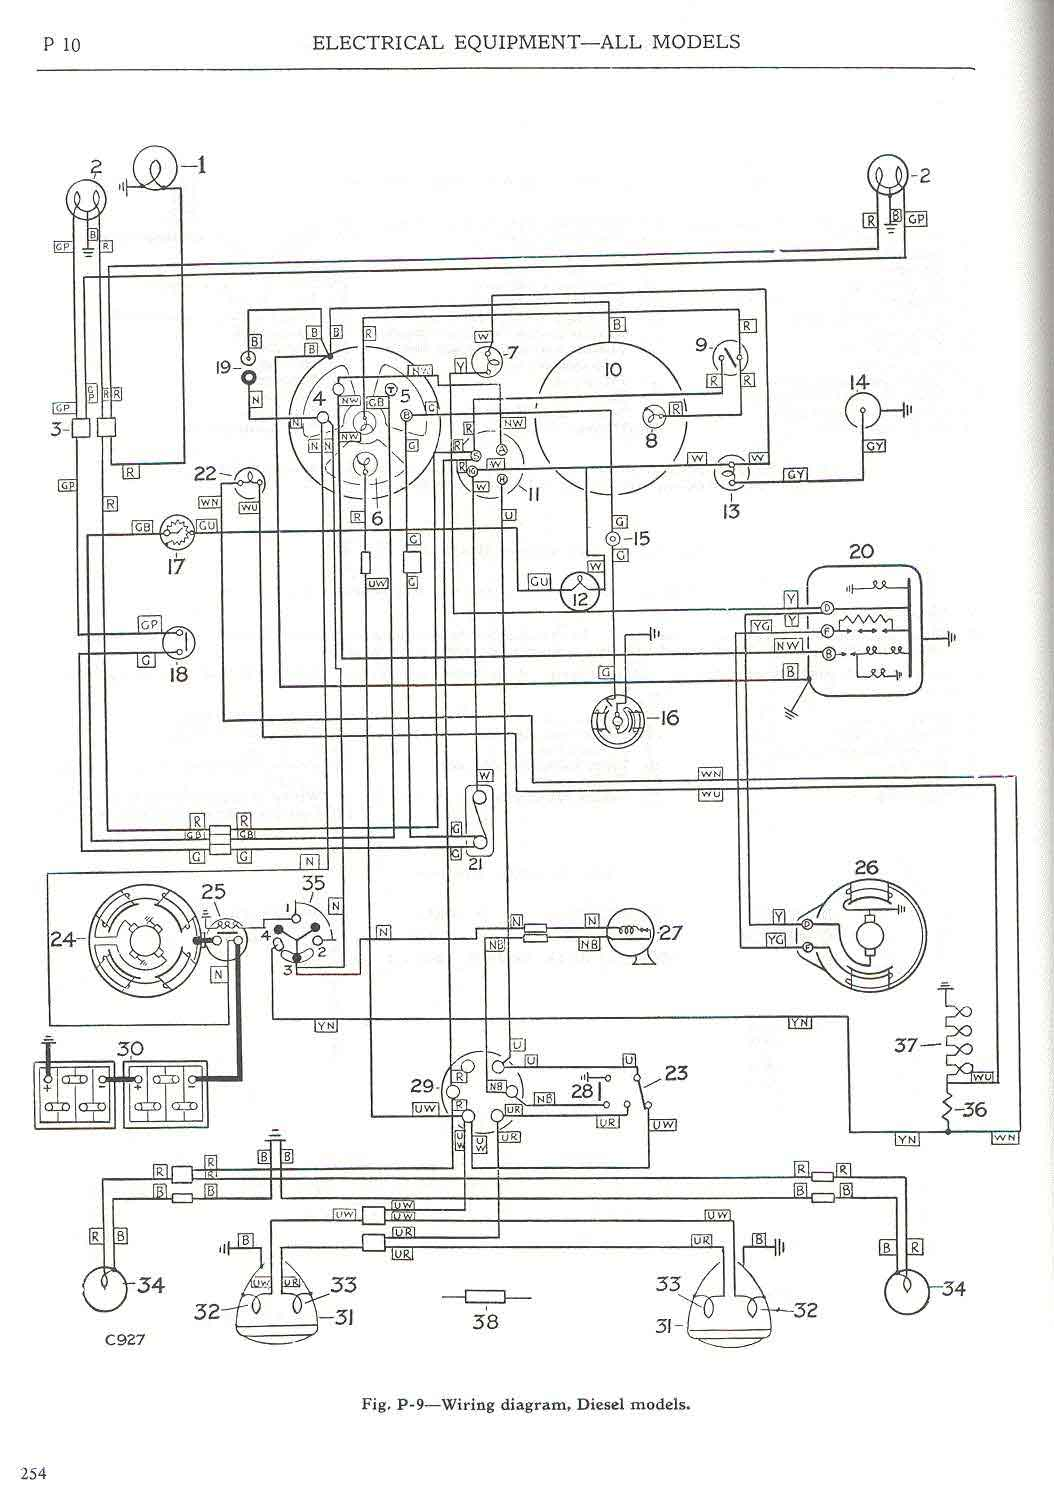 P Key Ii Wiring Diagram